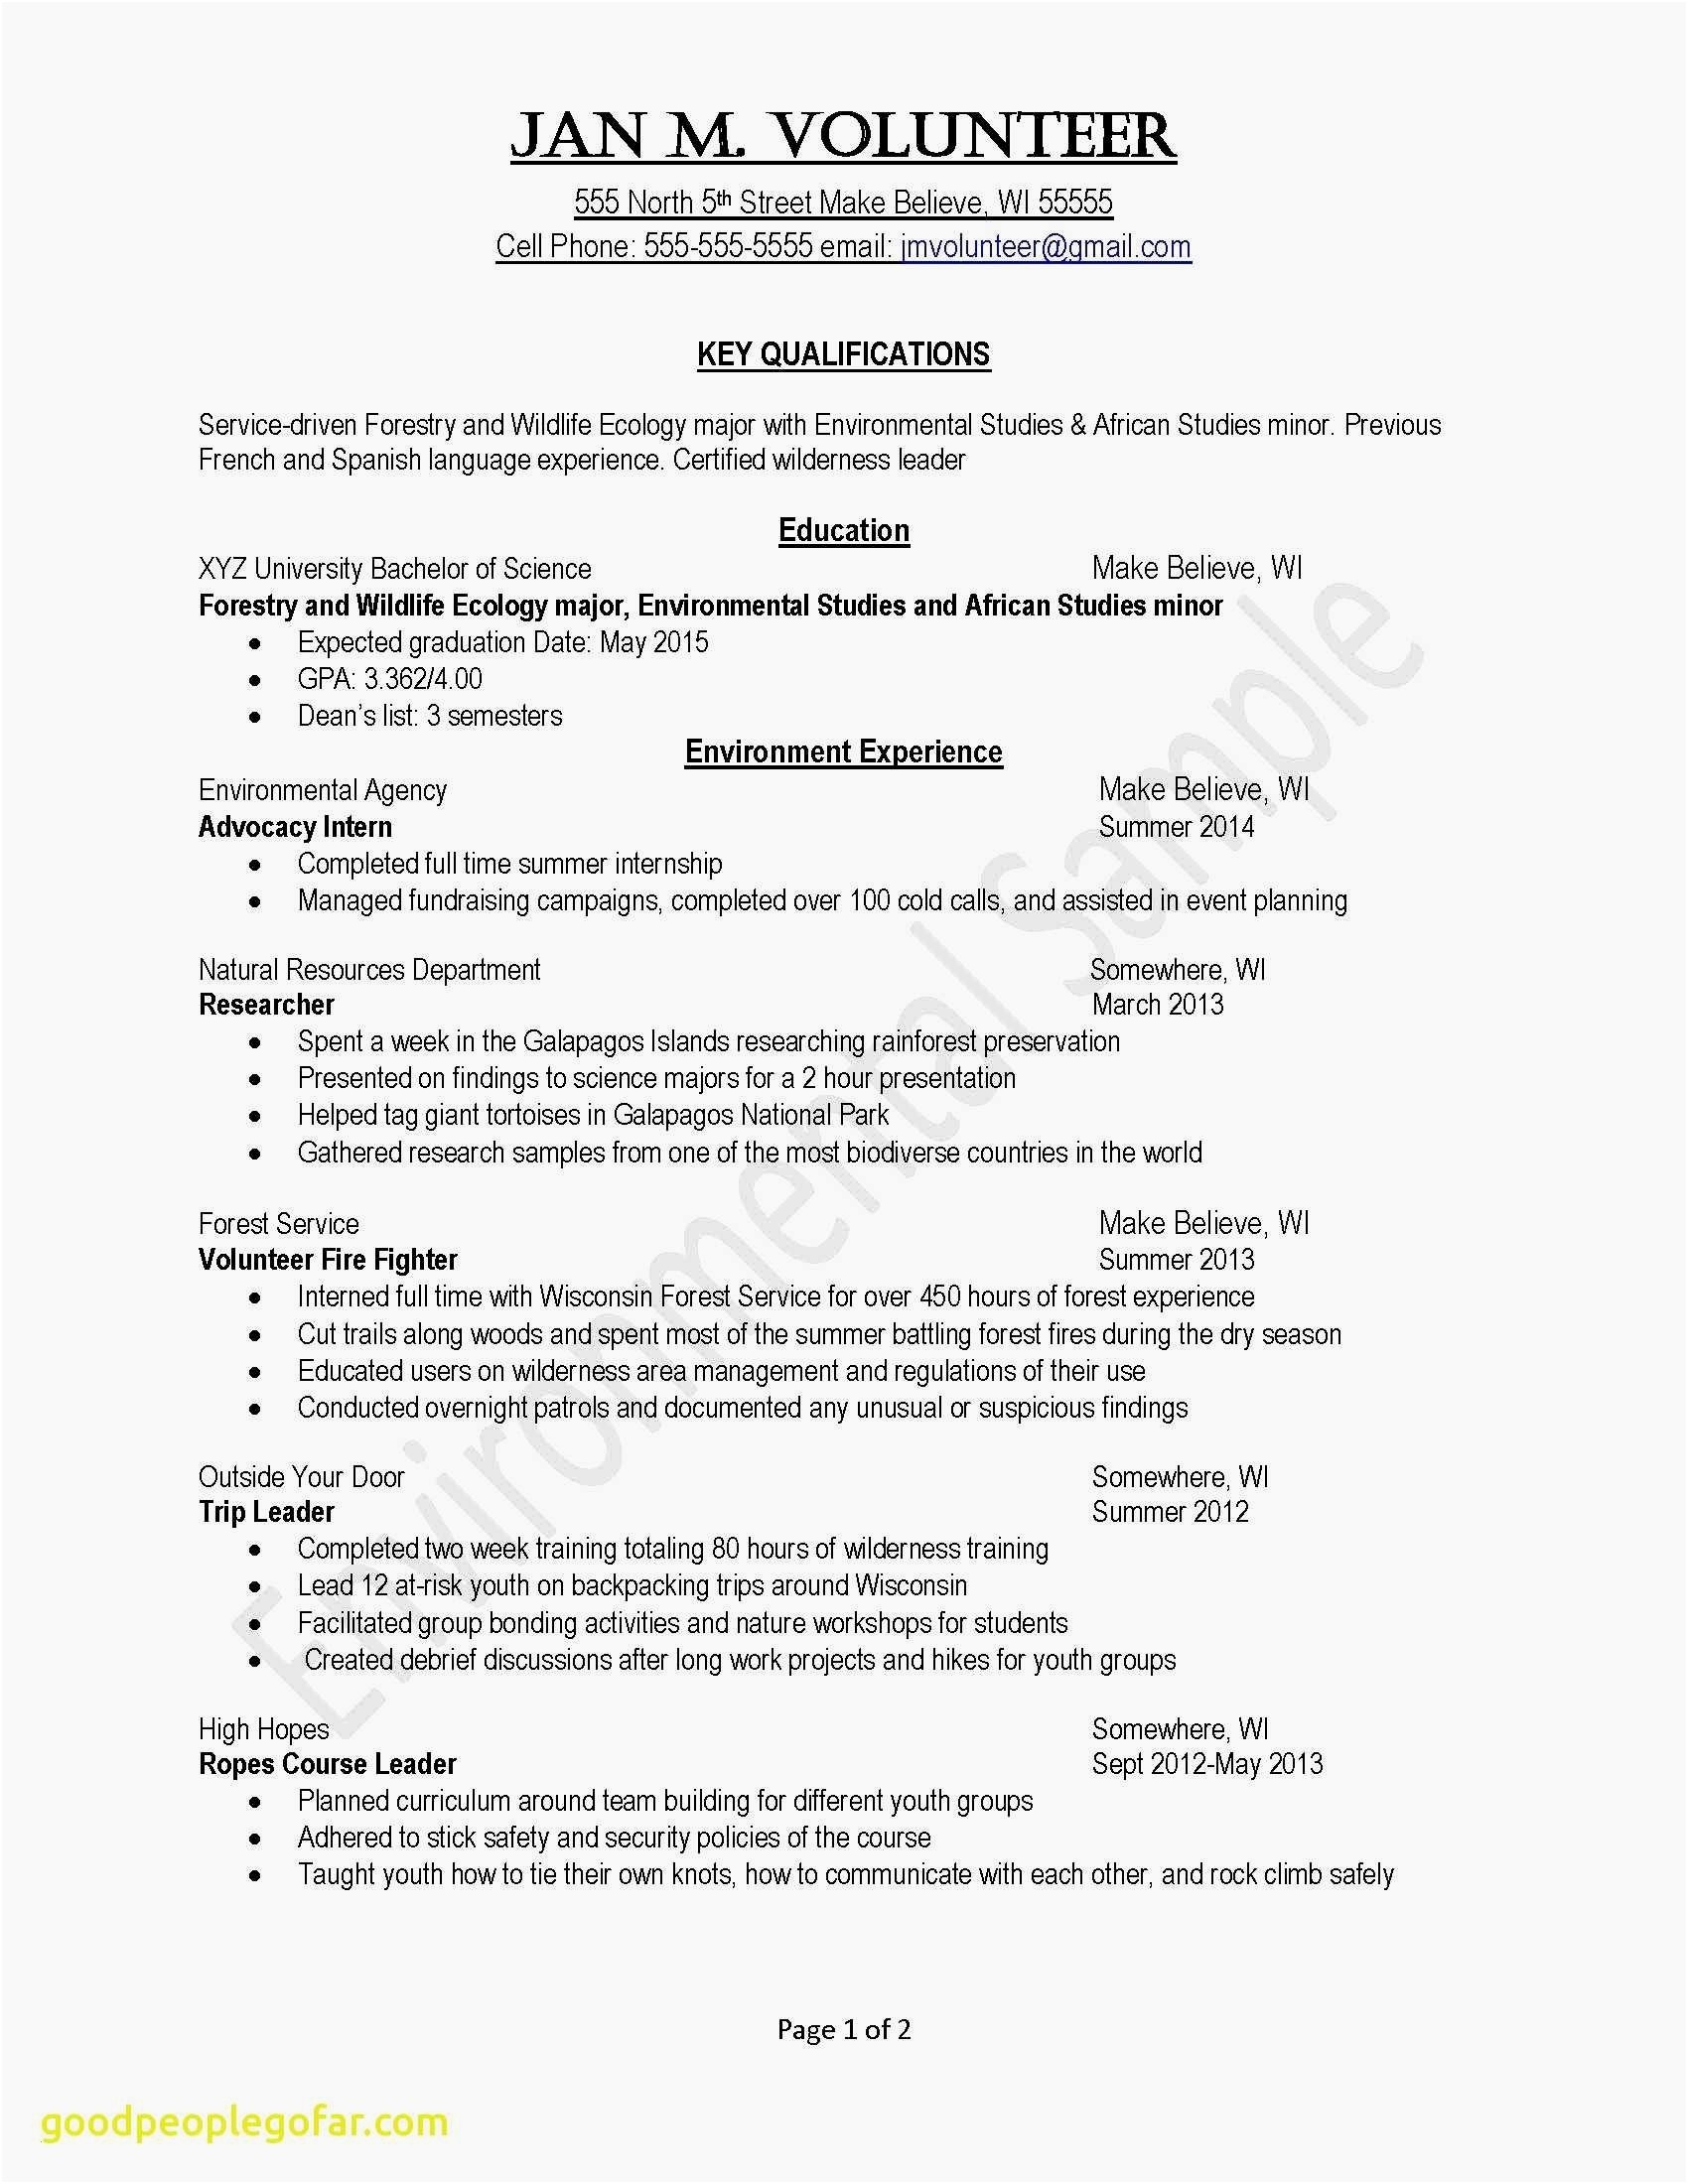 Basic Work Resume - Part Time Jobs Resume Example Inspirational Luxury Examples Resumes